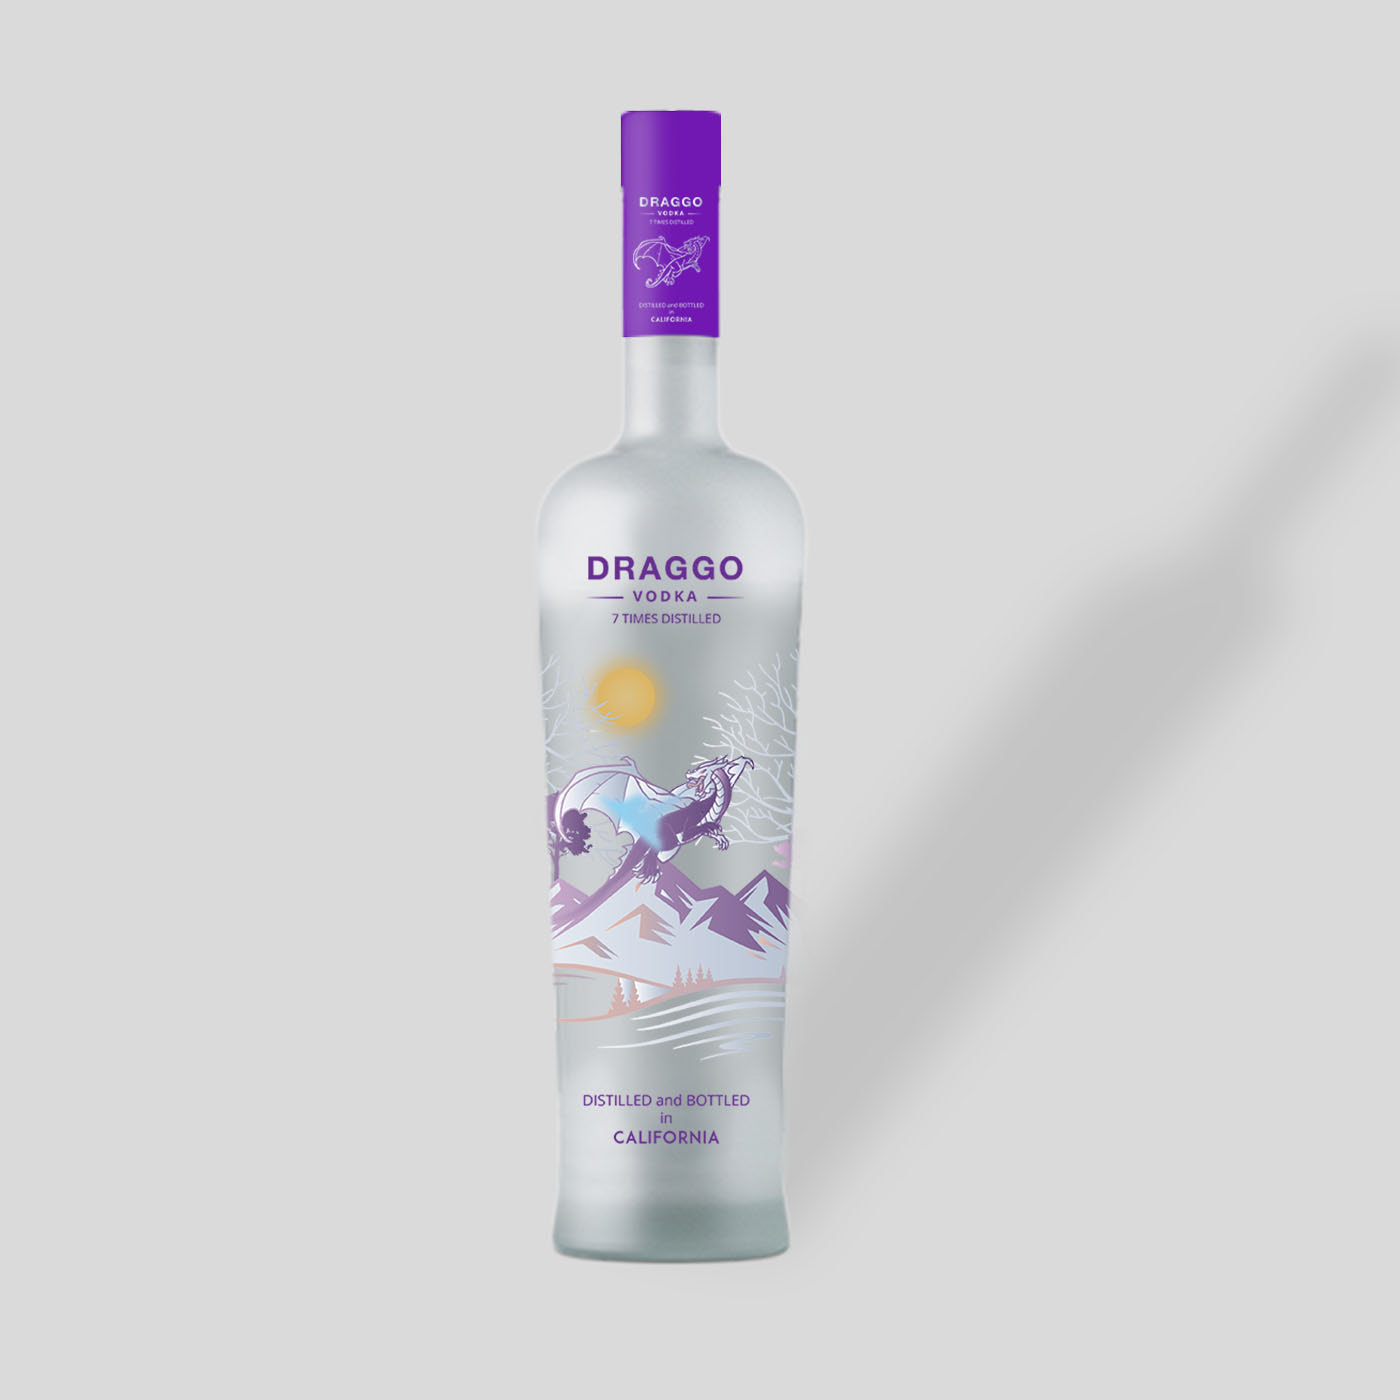 Frosted Vodka Bottle - Free PSD Mockup